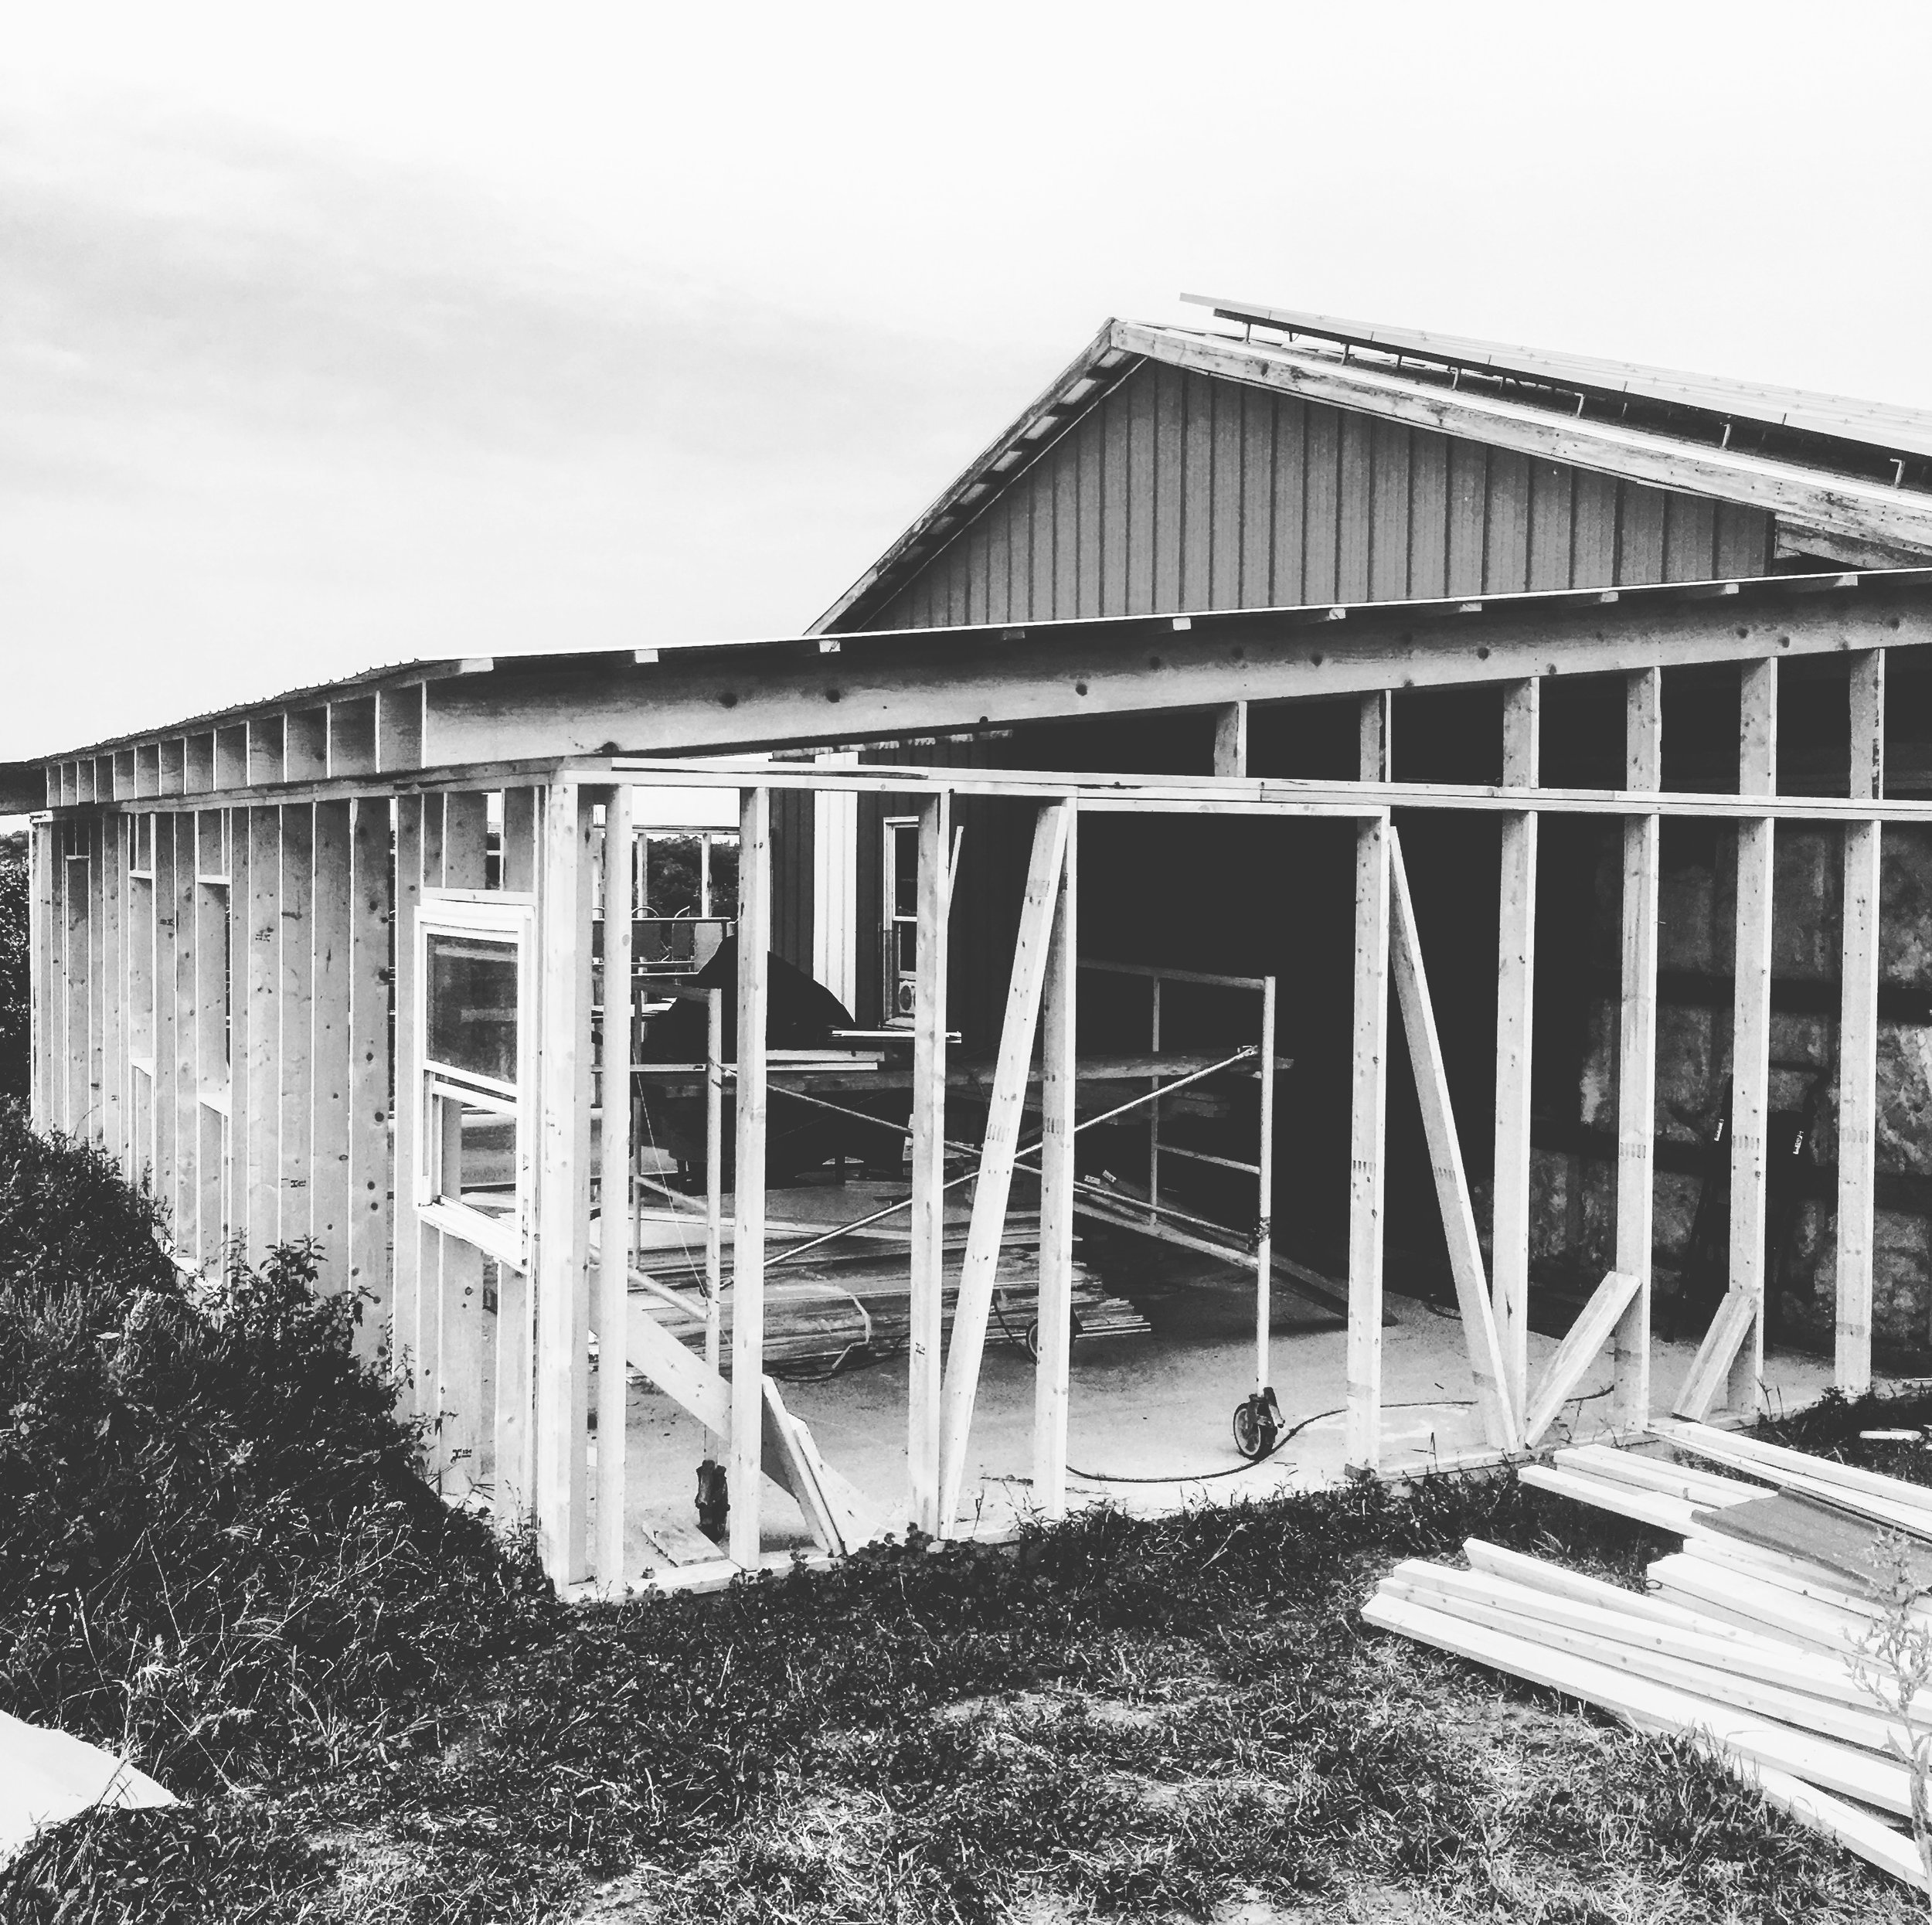 Barn addition in progress, Summer 2017